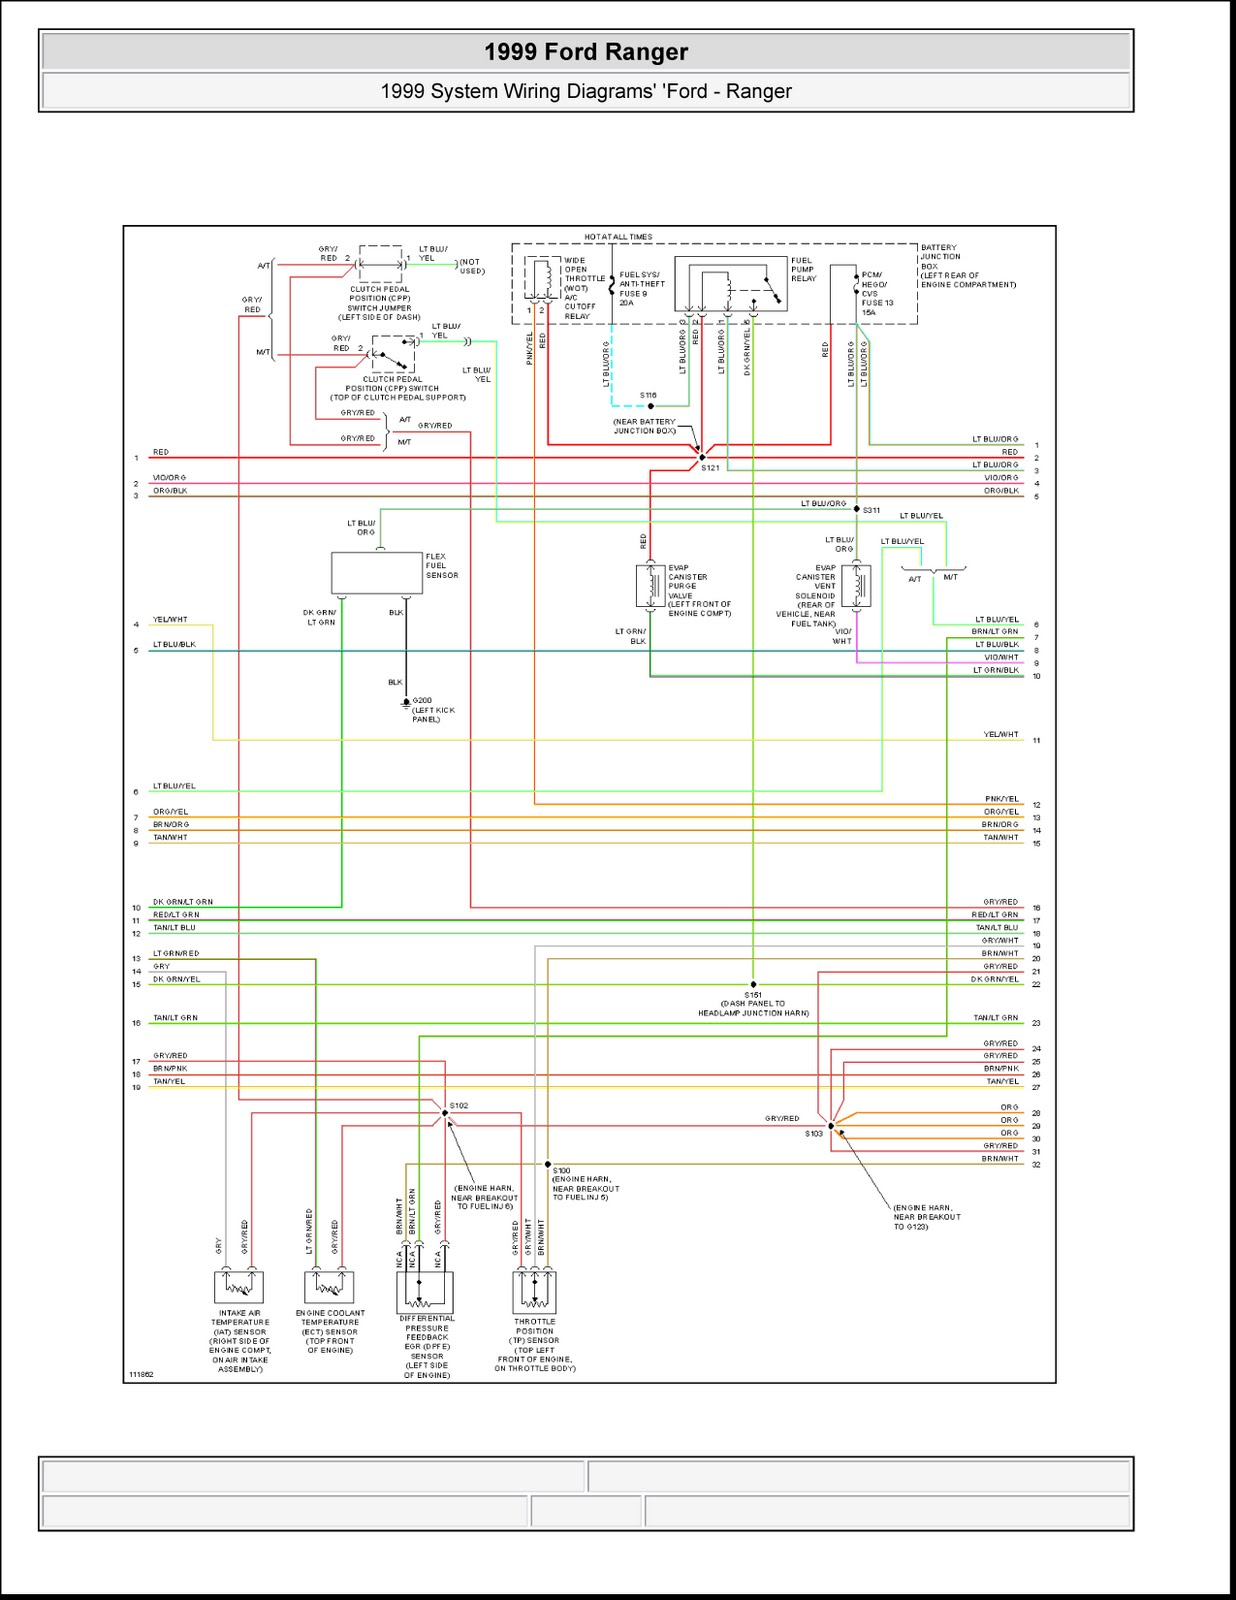 DIAGRAM] 1999 Ranger Wiring Diagram FULL Version HD Quality Wiring Diagram  - MOAN-SCHEMATICE.BRAMITA.IT  bramita.it